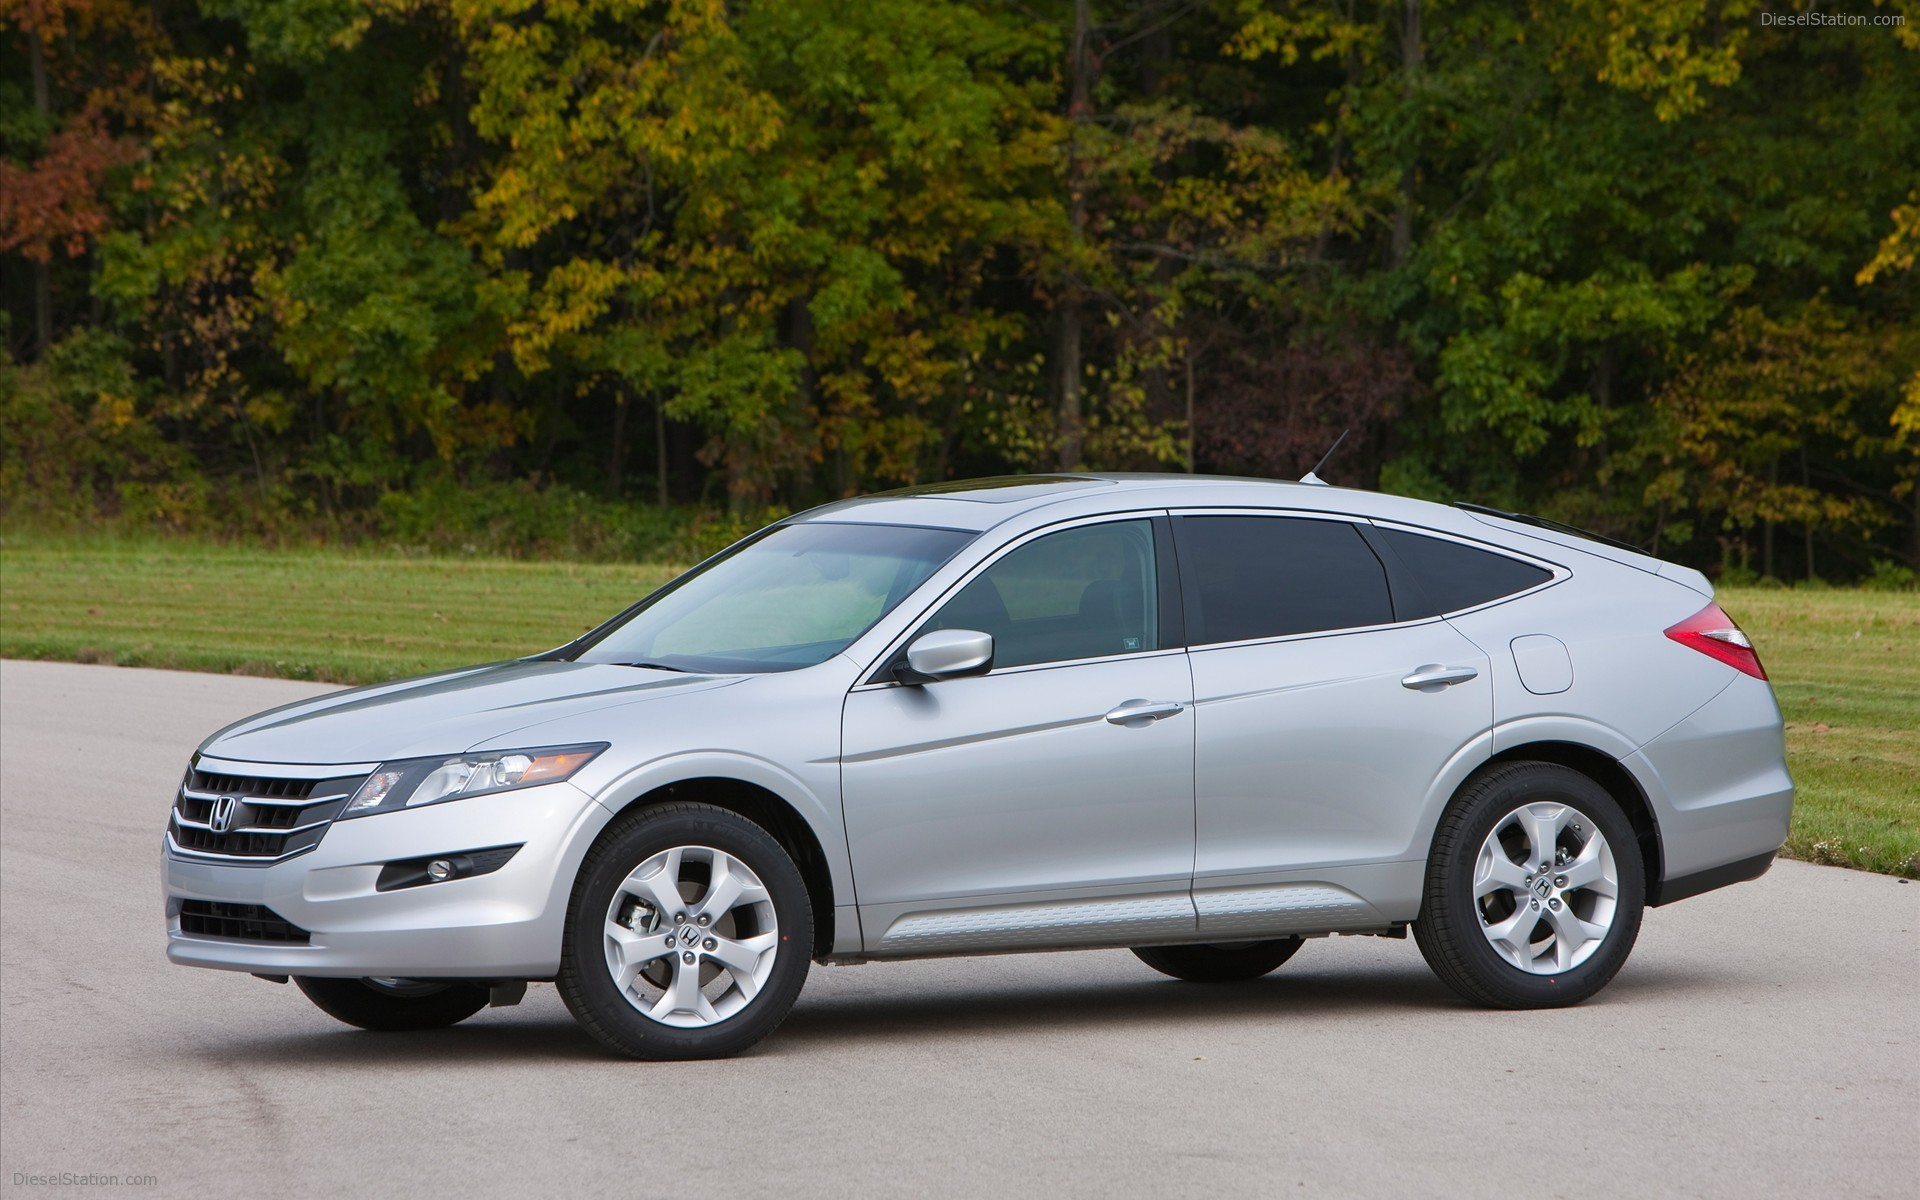 2010 Honda Accord Crosstour #2